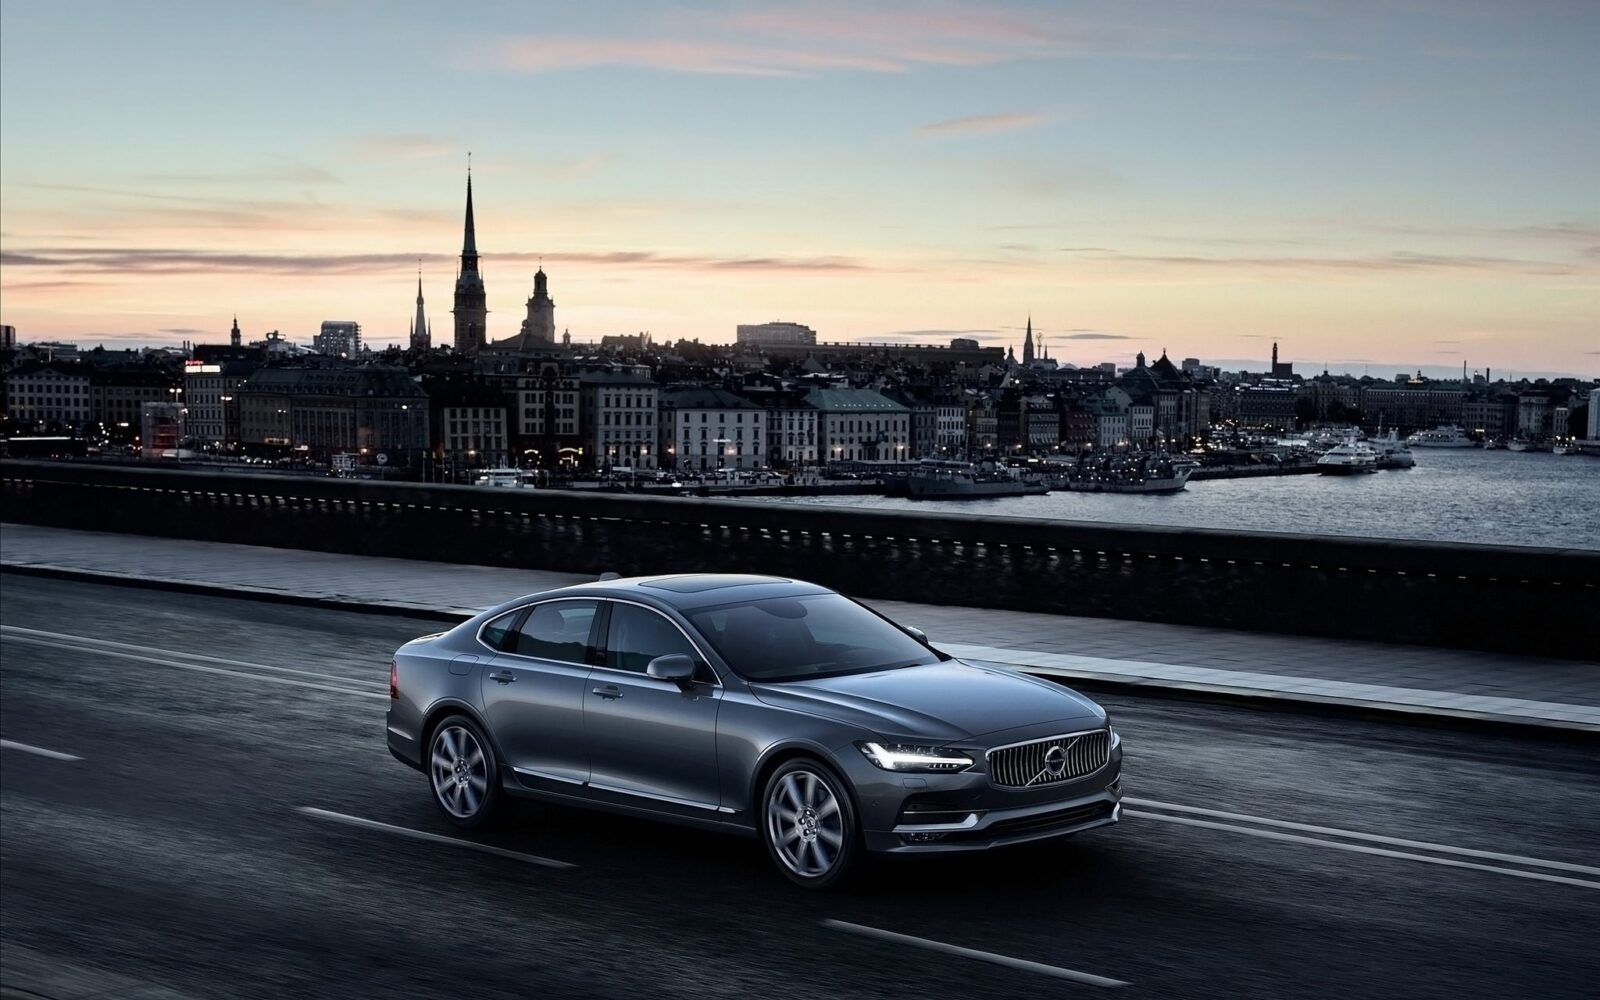 Image of 2016 Volvo S90 city